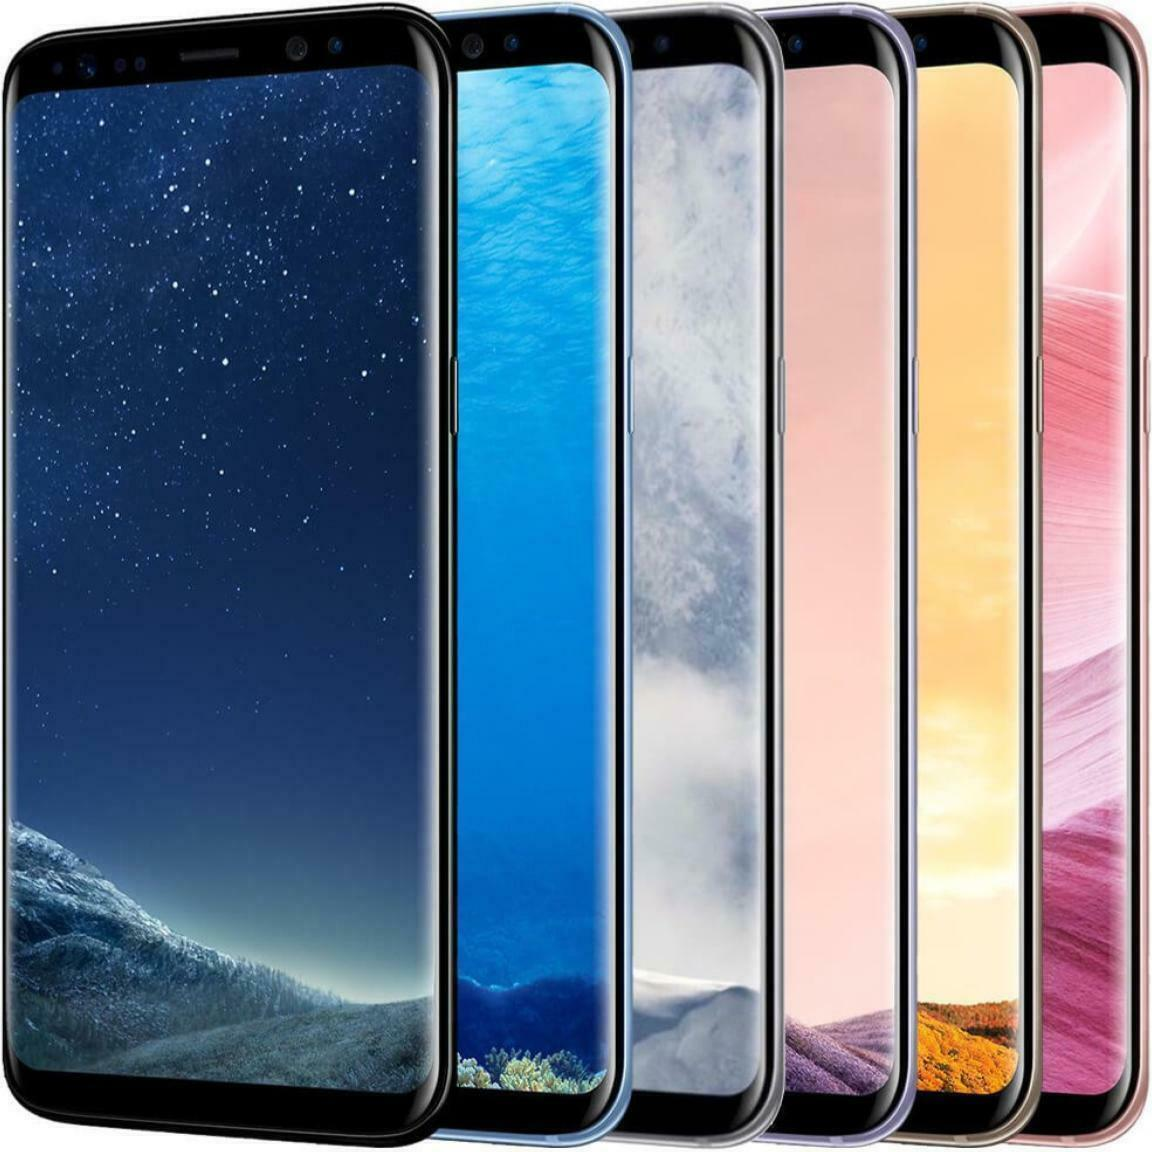 Android Phone - GSM UNLOCKED Samsung Galaxy S8 64GB (SM-G950) Exynos International All Colors